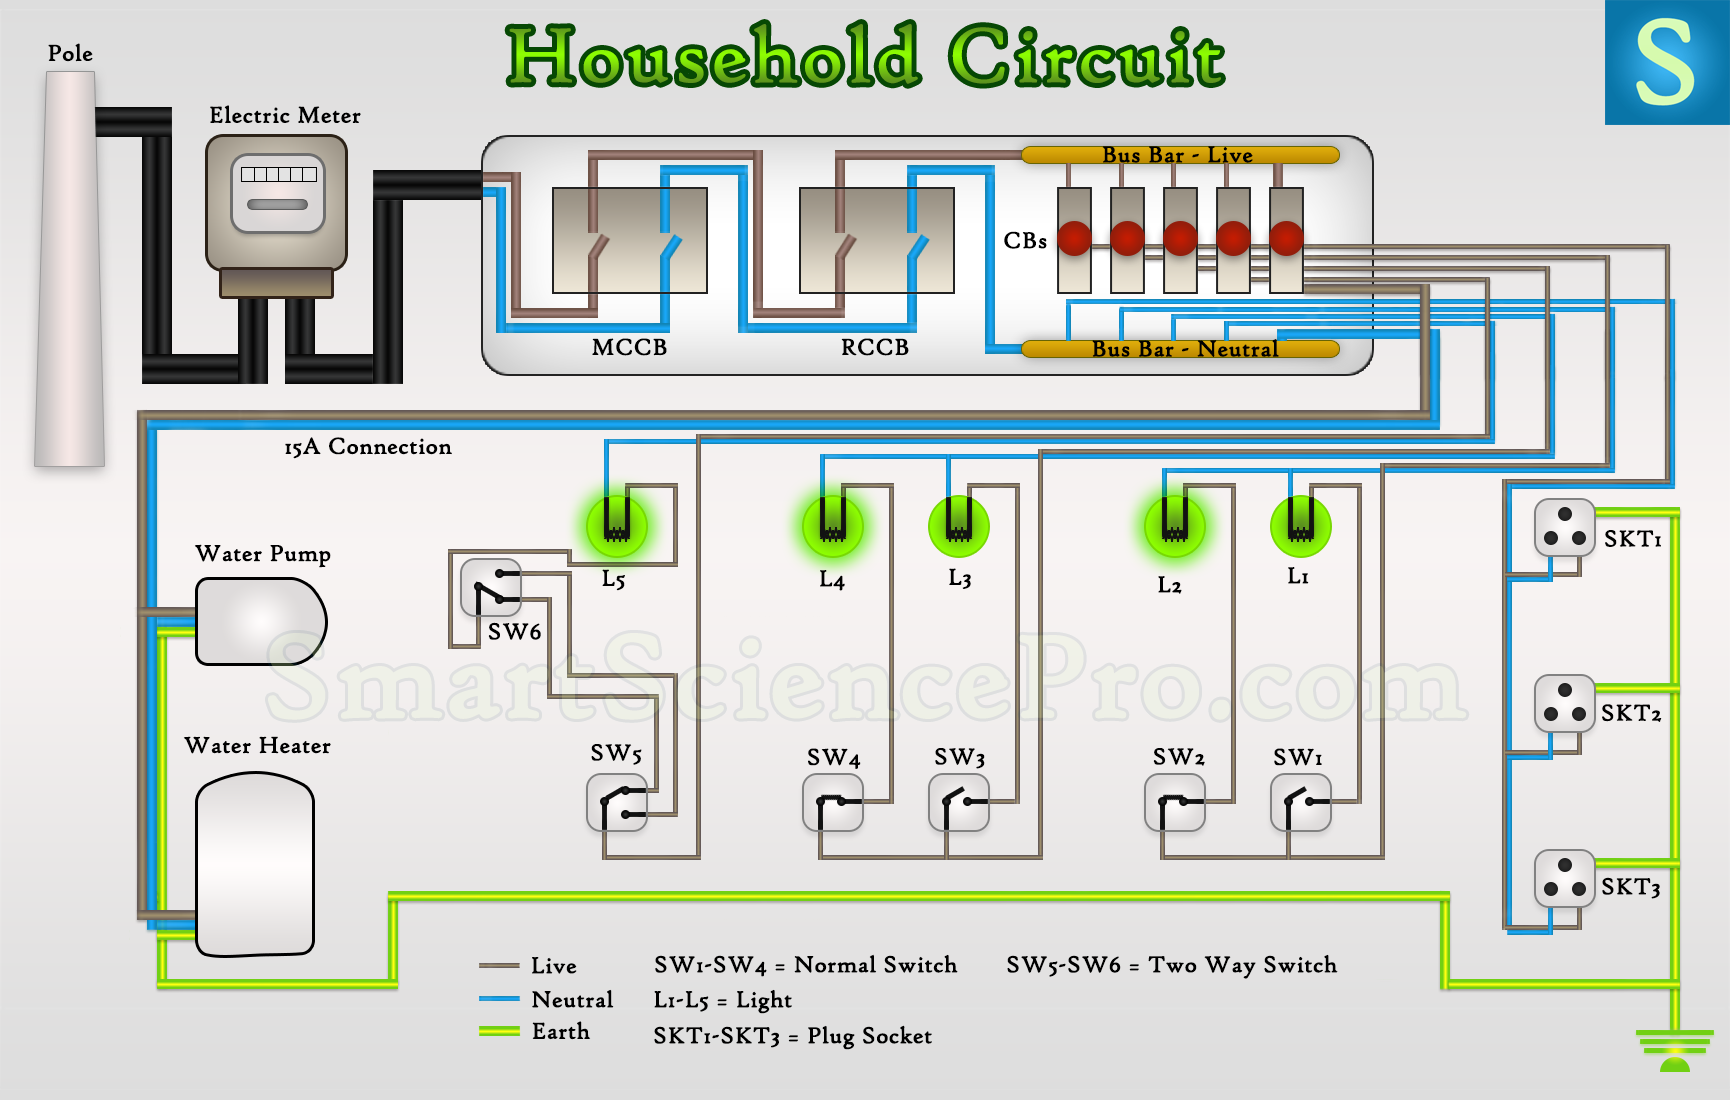 Typical House Electrical Wiring Diagram | Wiring Schematic ... on electronics circuits, thermostat circuits, relay circuits, building circuits, audio circuits, electrical circuits, computer circuits, inverter circuits, power circuits, wire circuits, coil circuits, motor circuits, lighting circuits, control circuits, three circuits, battery circuits,